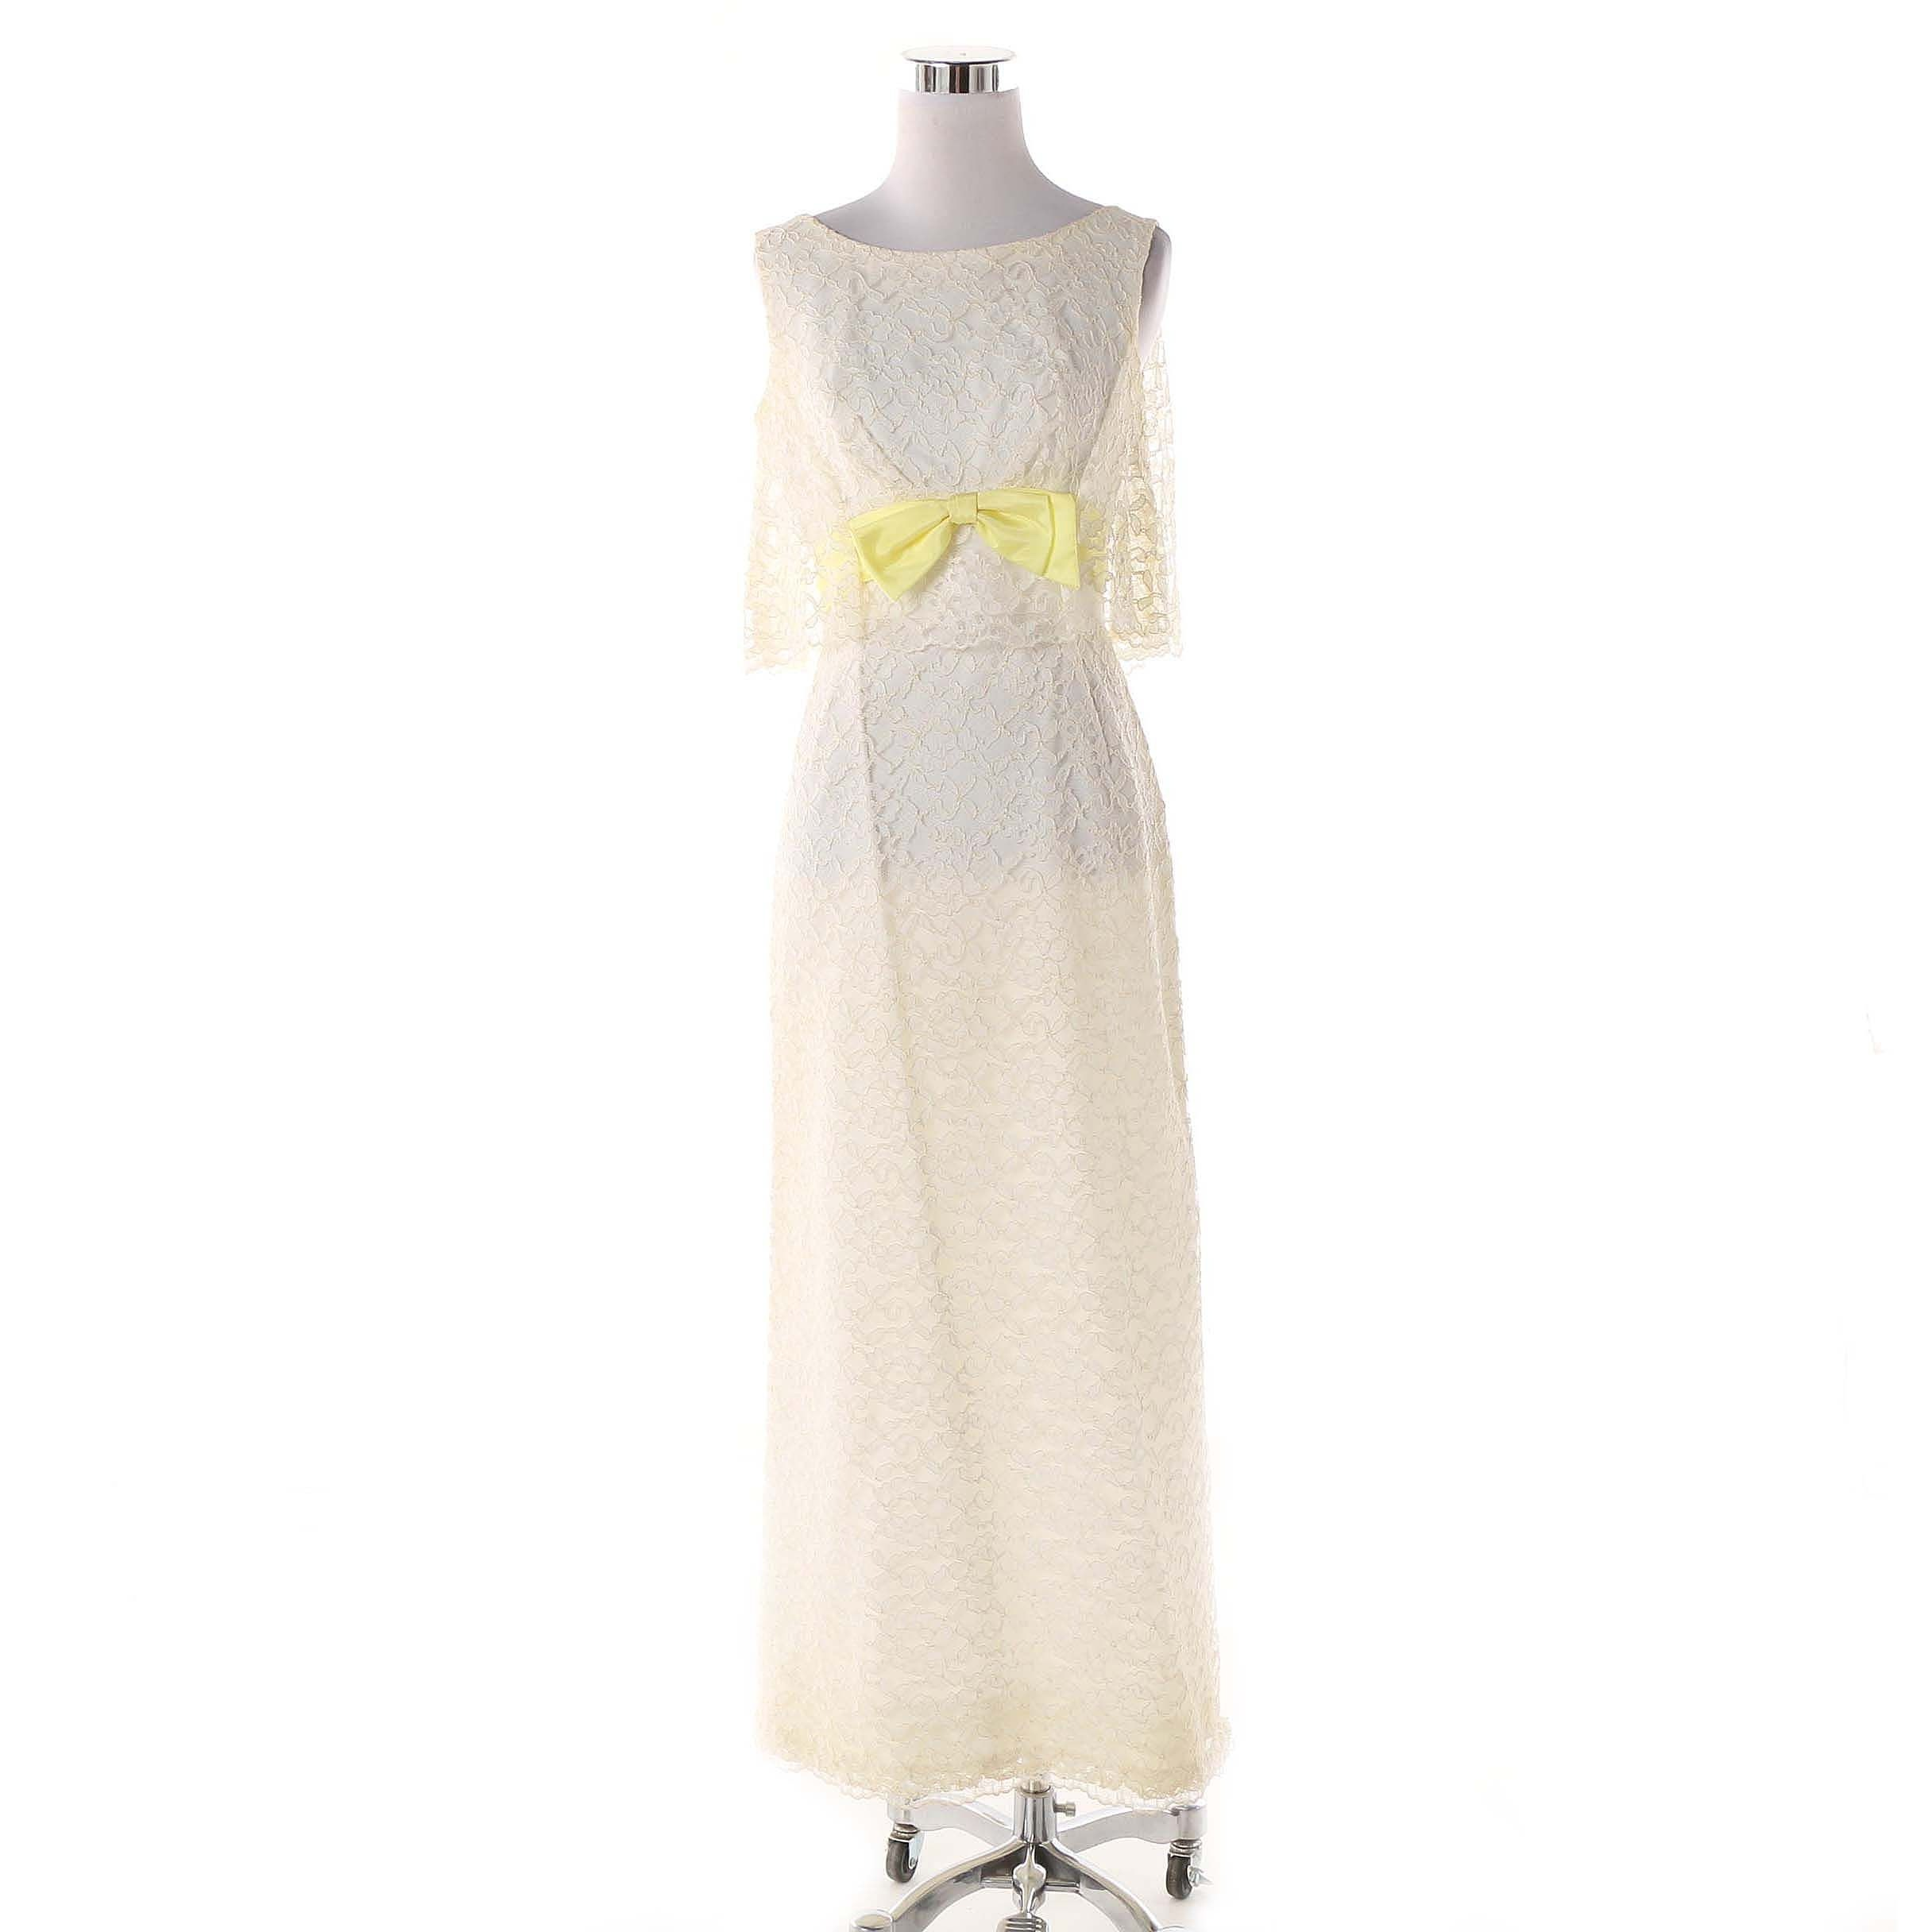 Women's Vintage Overlay Bodice Lace Gown with Yellow Bow